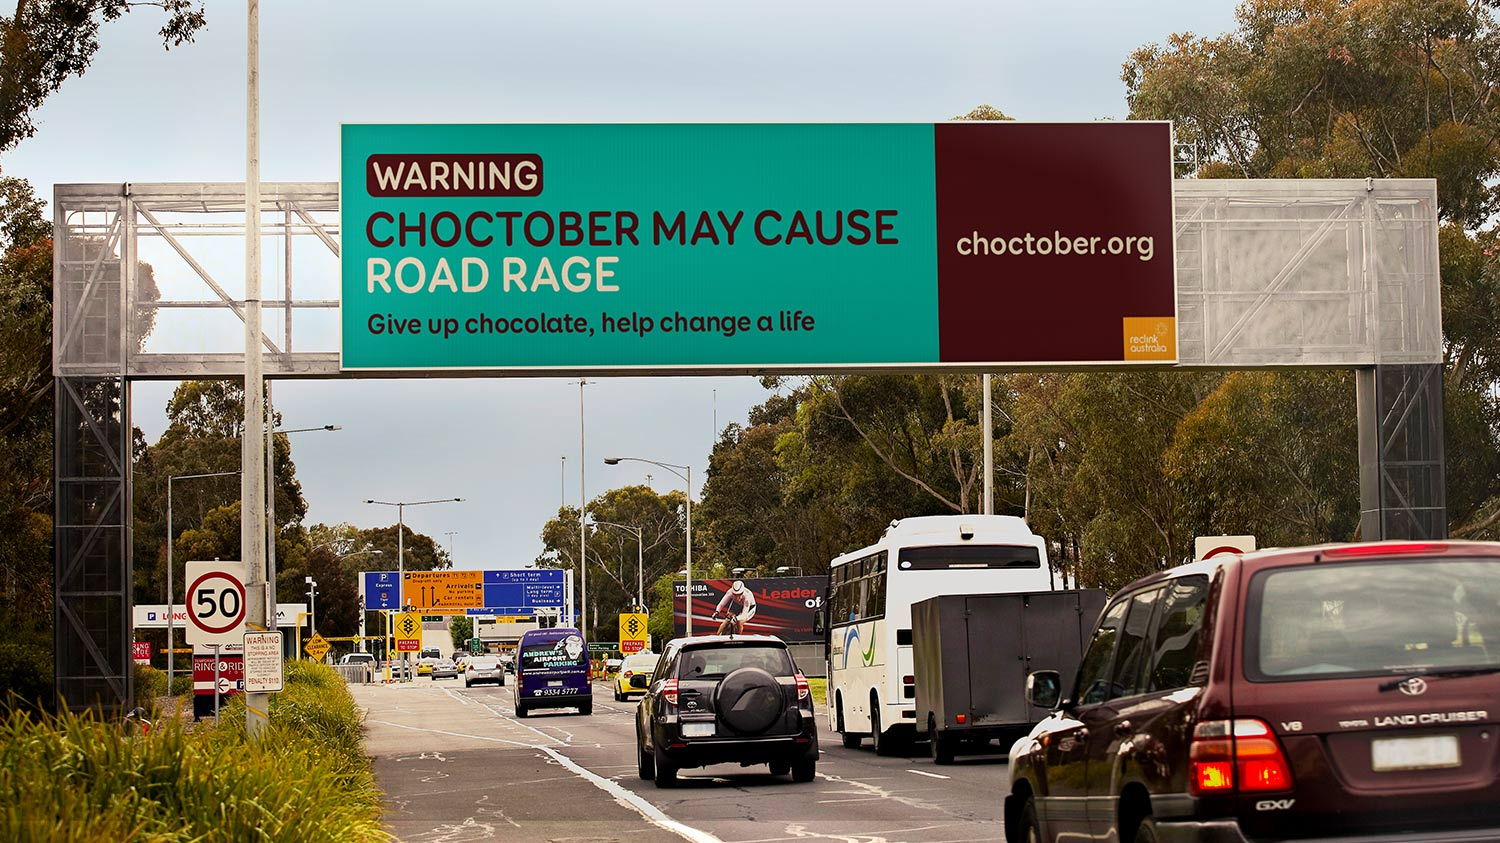 Choctober Billboard Outdoor Media | Warning. Choctober may cause road rage. Give up chocolate, help change a life